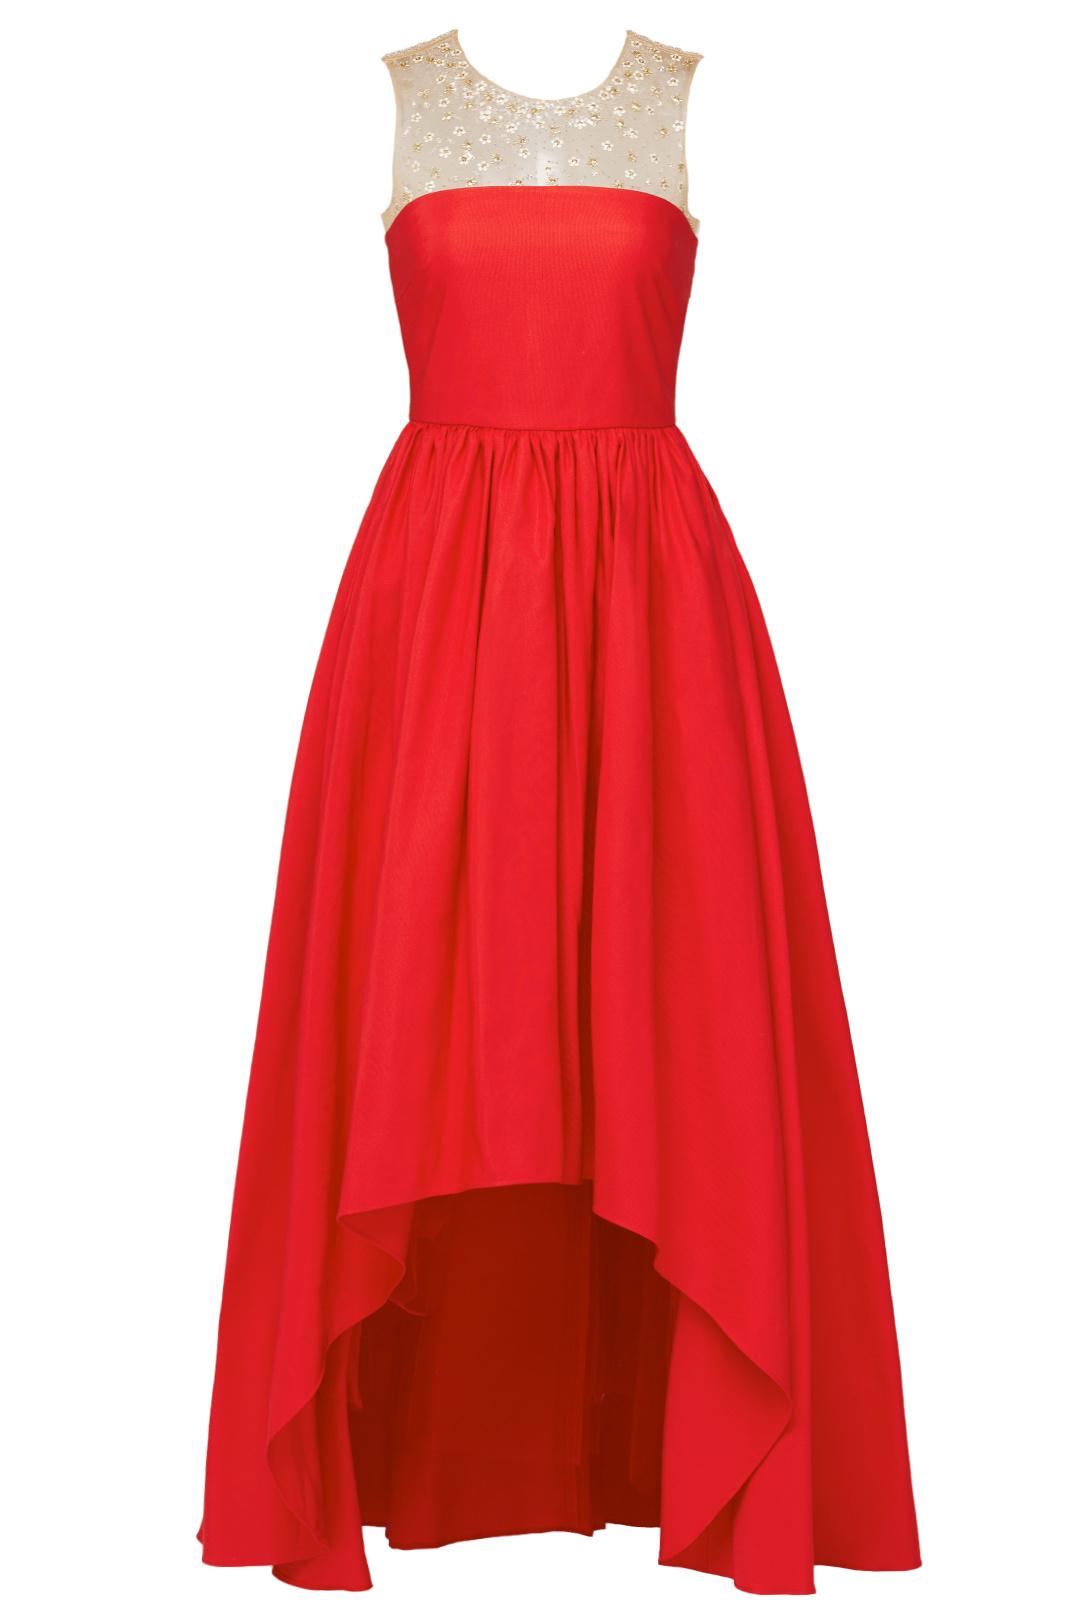 7c082af0 Details about Marchesa Notte Red Women's Size 12 High Low Beaded Yoke Gown  Dress $1295- #625